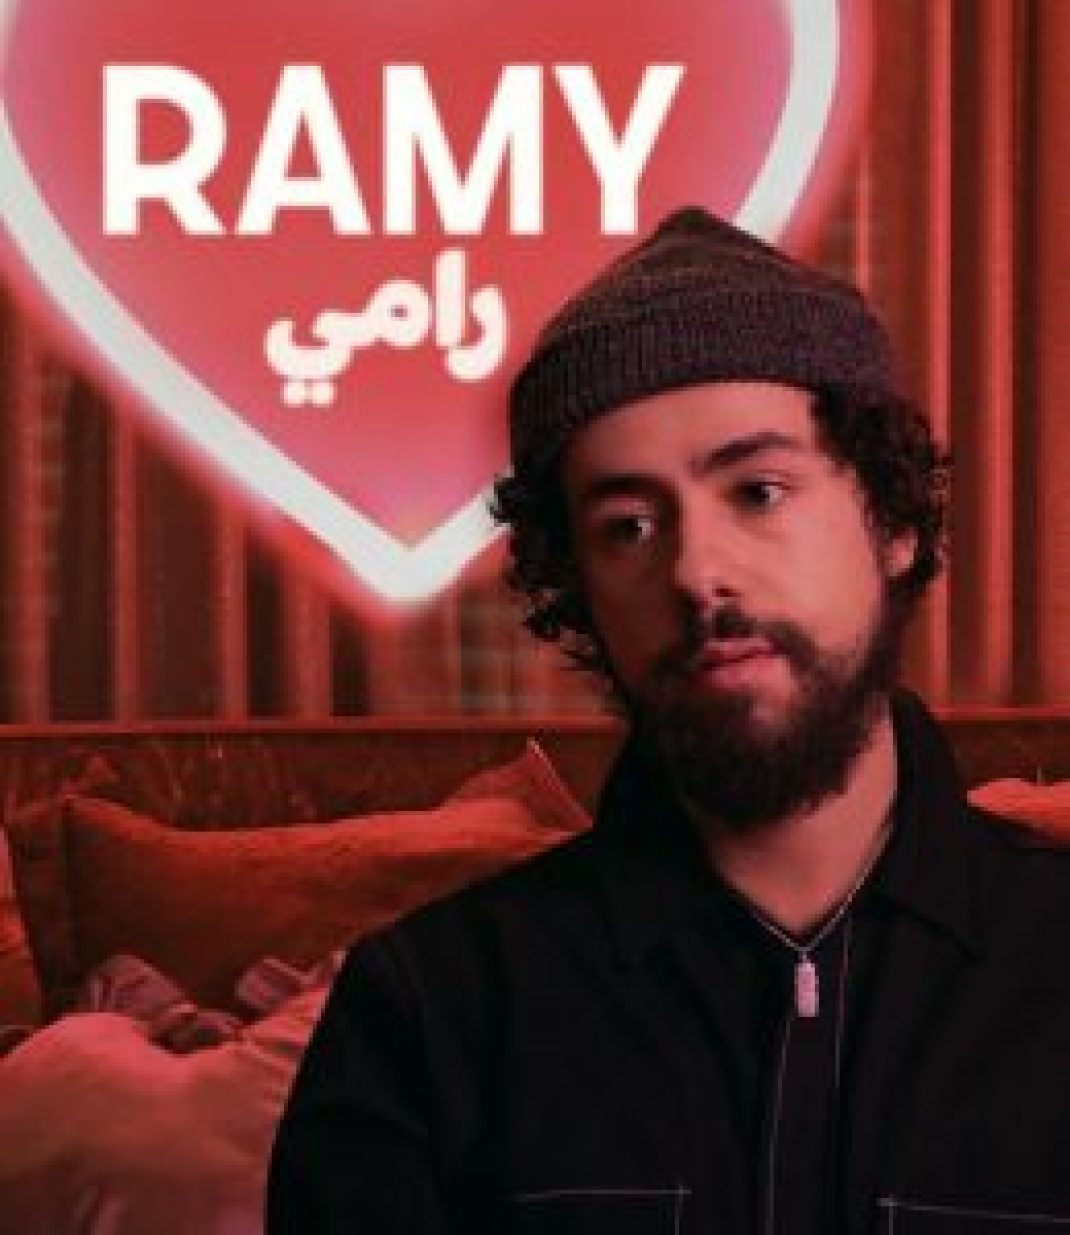 Season Two of the Hit Series Ramy, Finally Out!